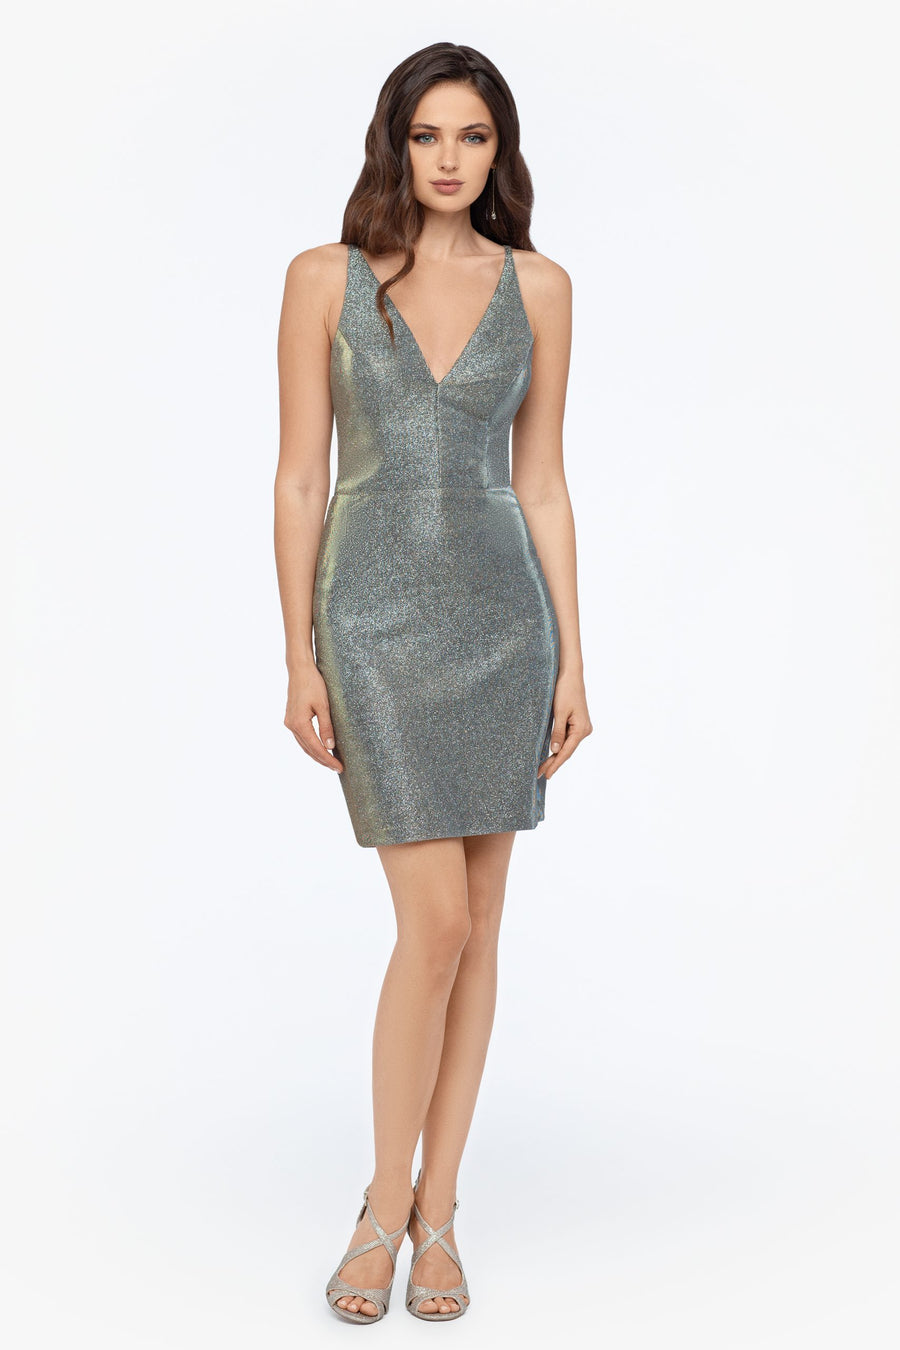 Short Slim Metallic Deep V Dress